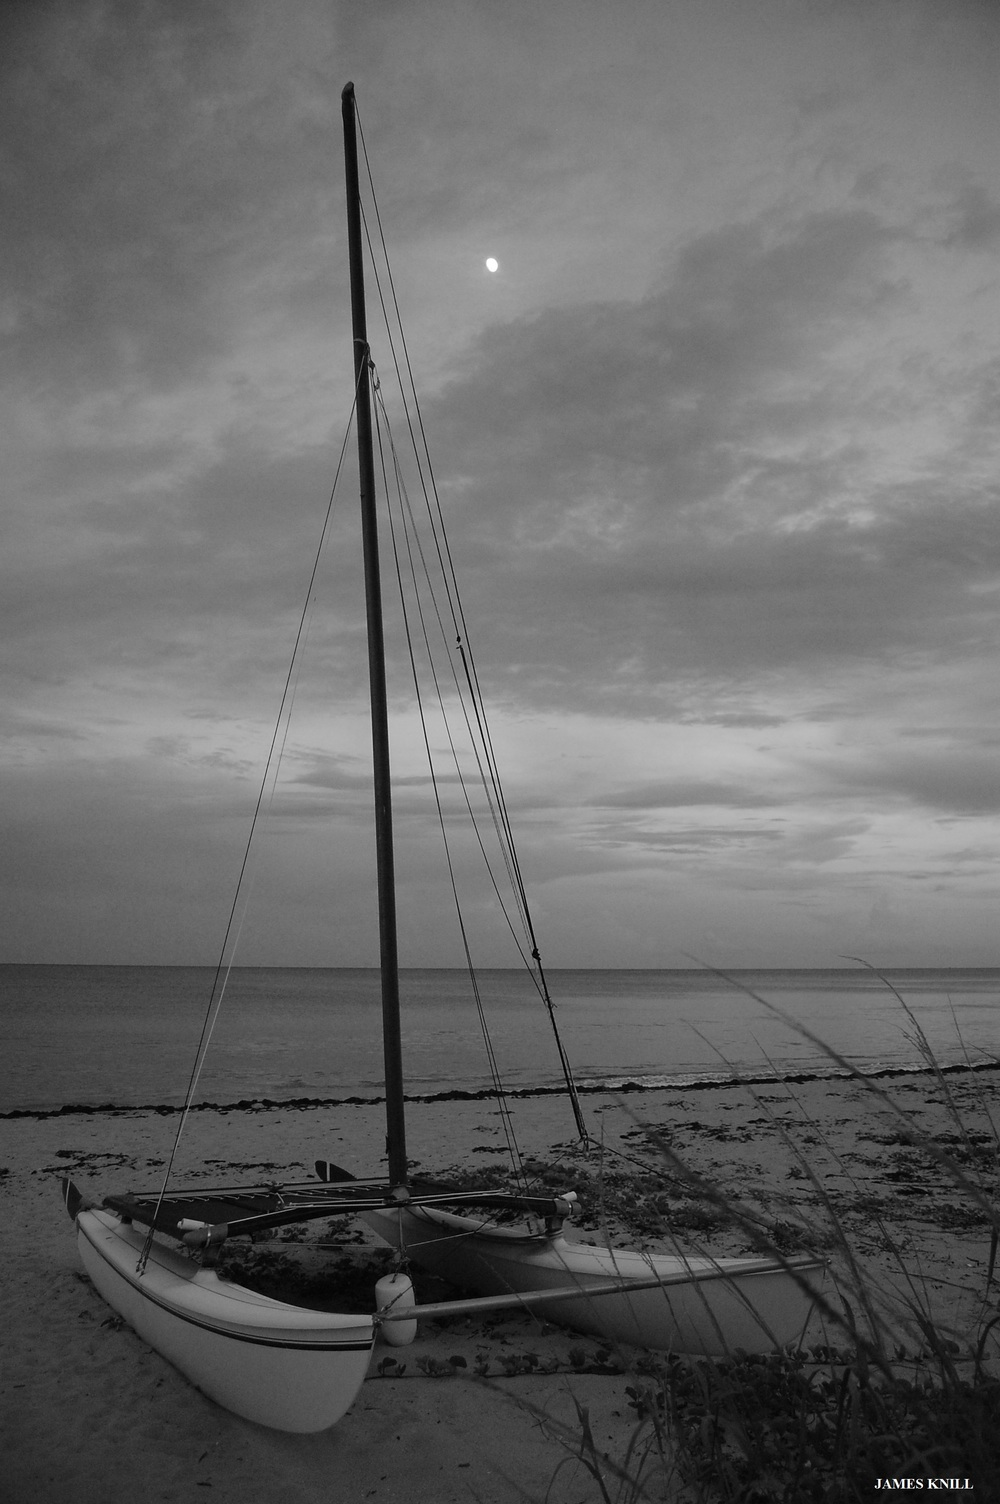 Hobie Boat and Moon Black and White